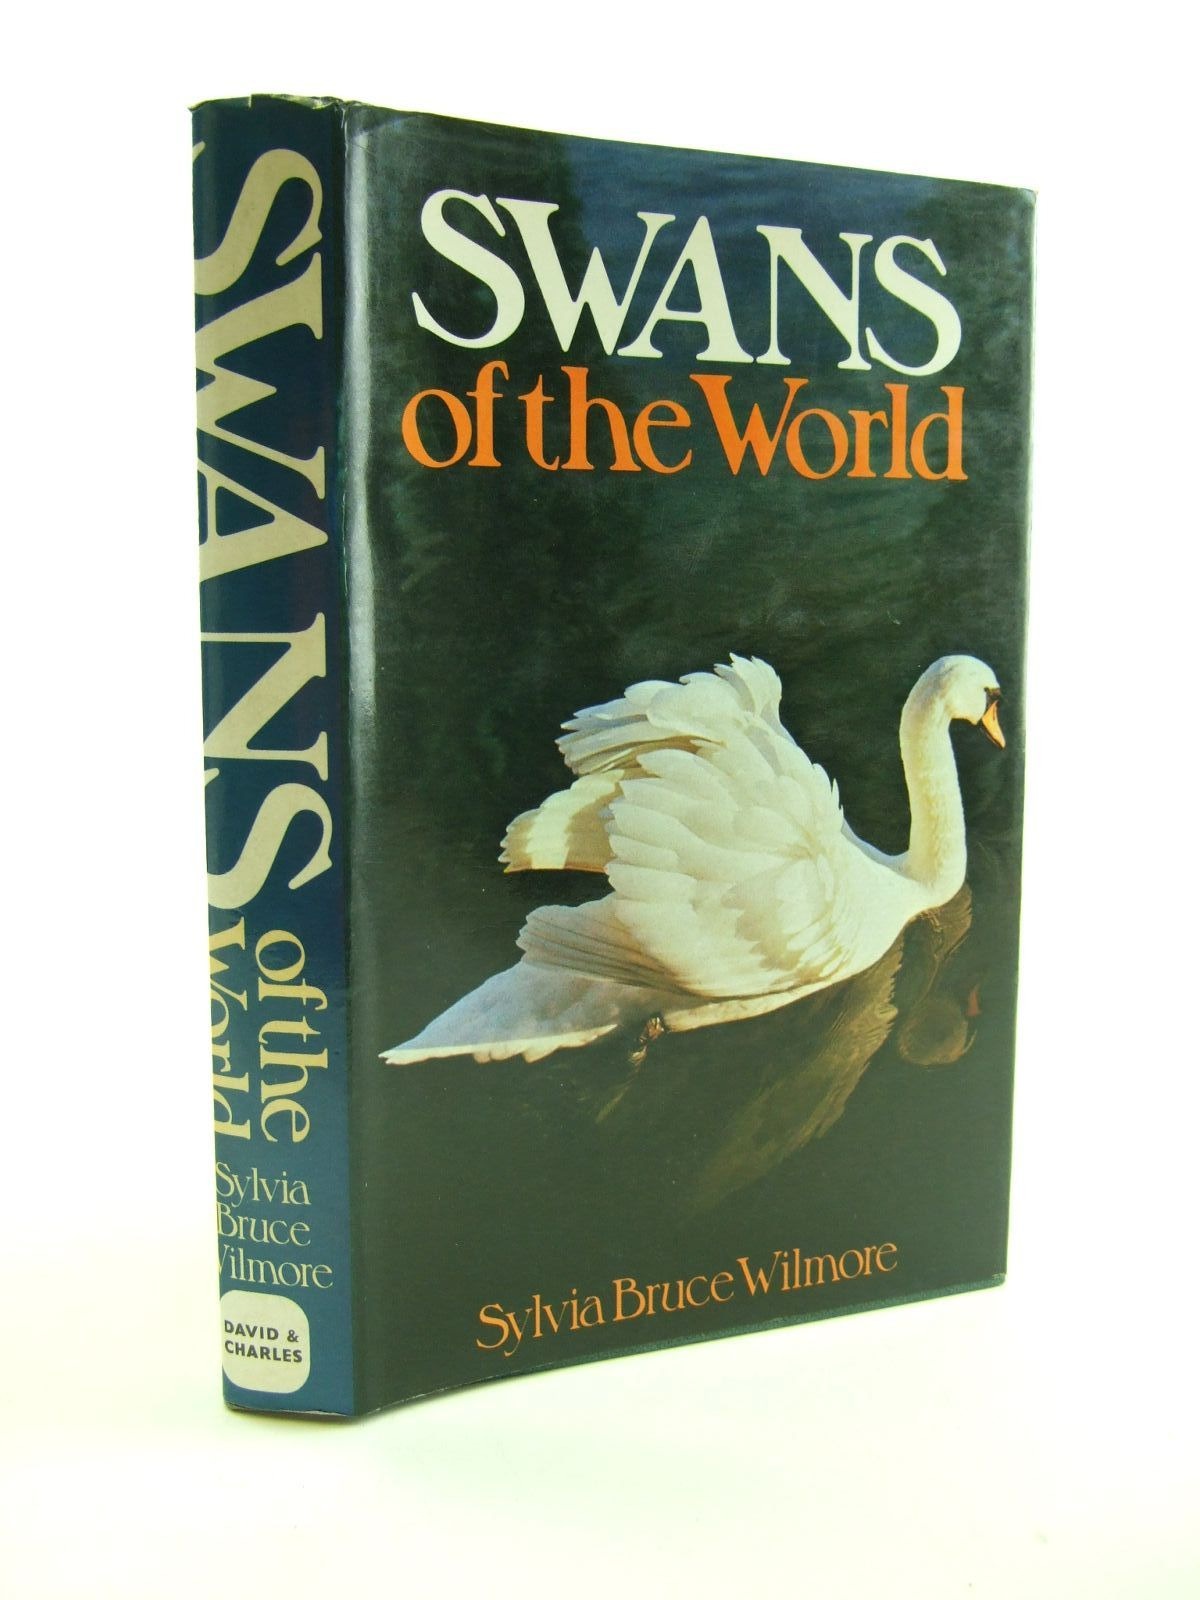 Photo of SWANS OF THE WORLD written by Wilmore, Sylvia Bruce published by David & Charles (STOCK CODE: 1207141)  for sale by Stella & Rose's Books